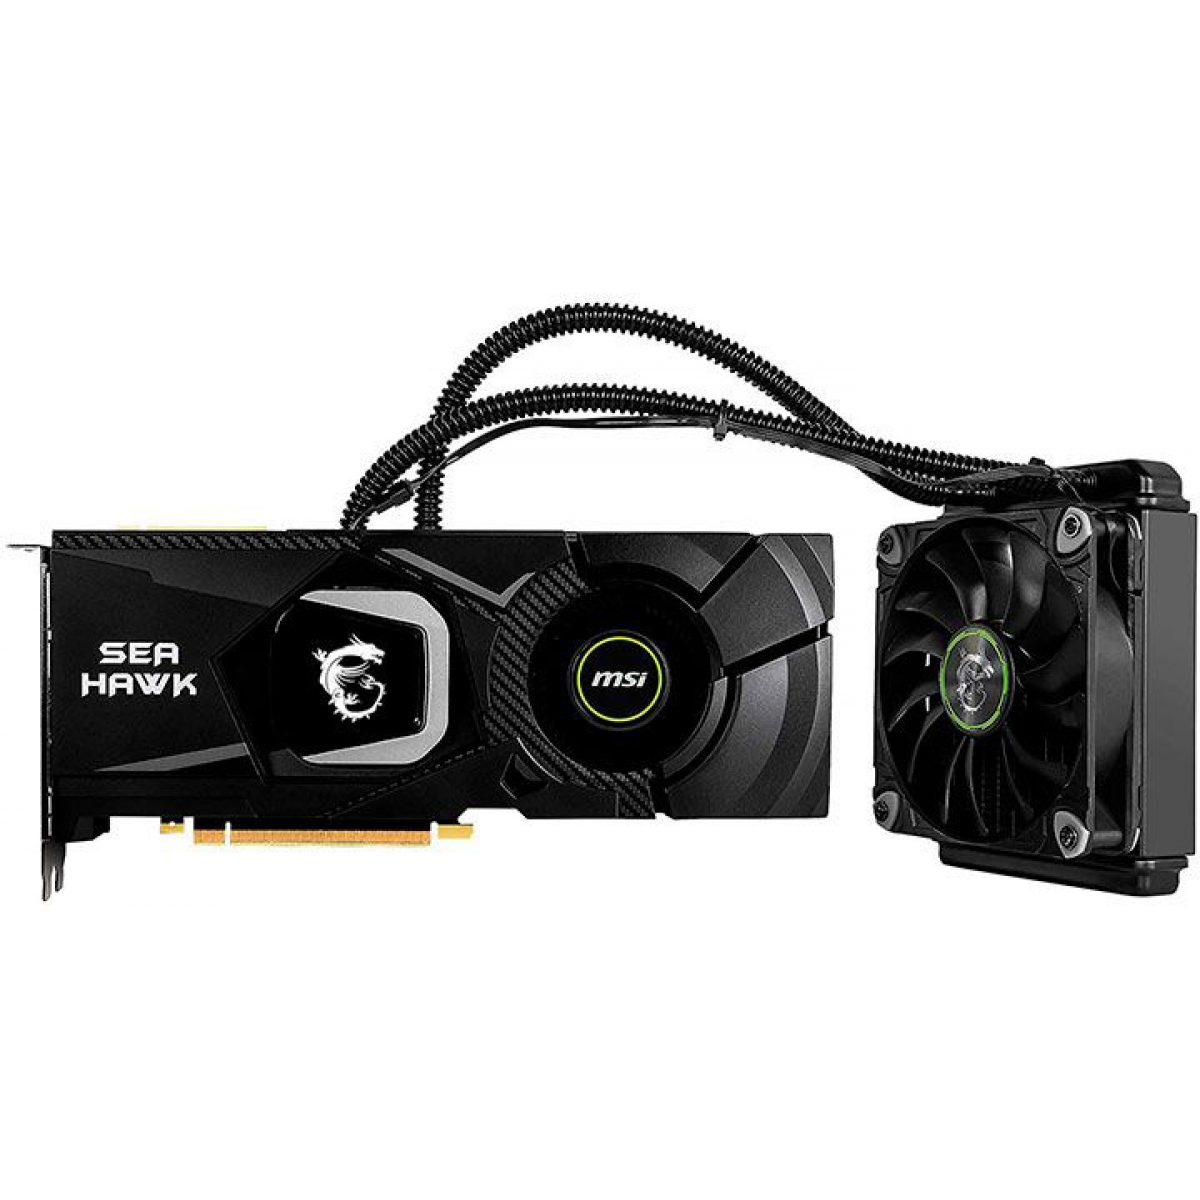 Placa de Video MSI GeForce RTX 2080 Sea Hawk X, 8GB GDDR6, 256Bit, 912-V372-008